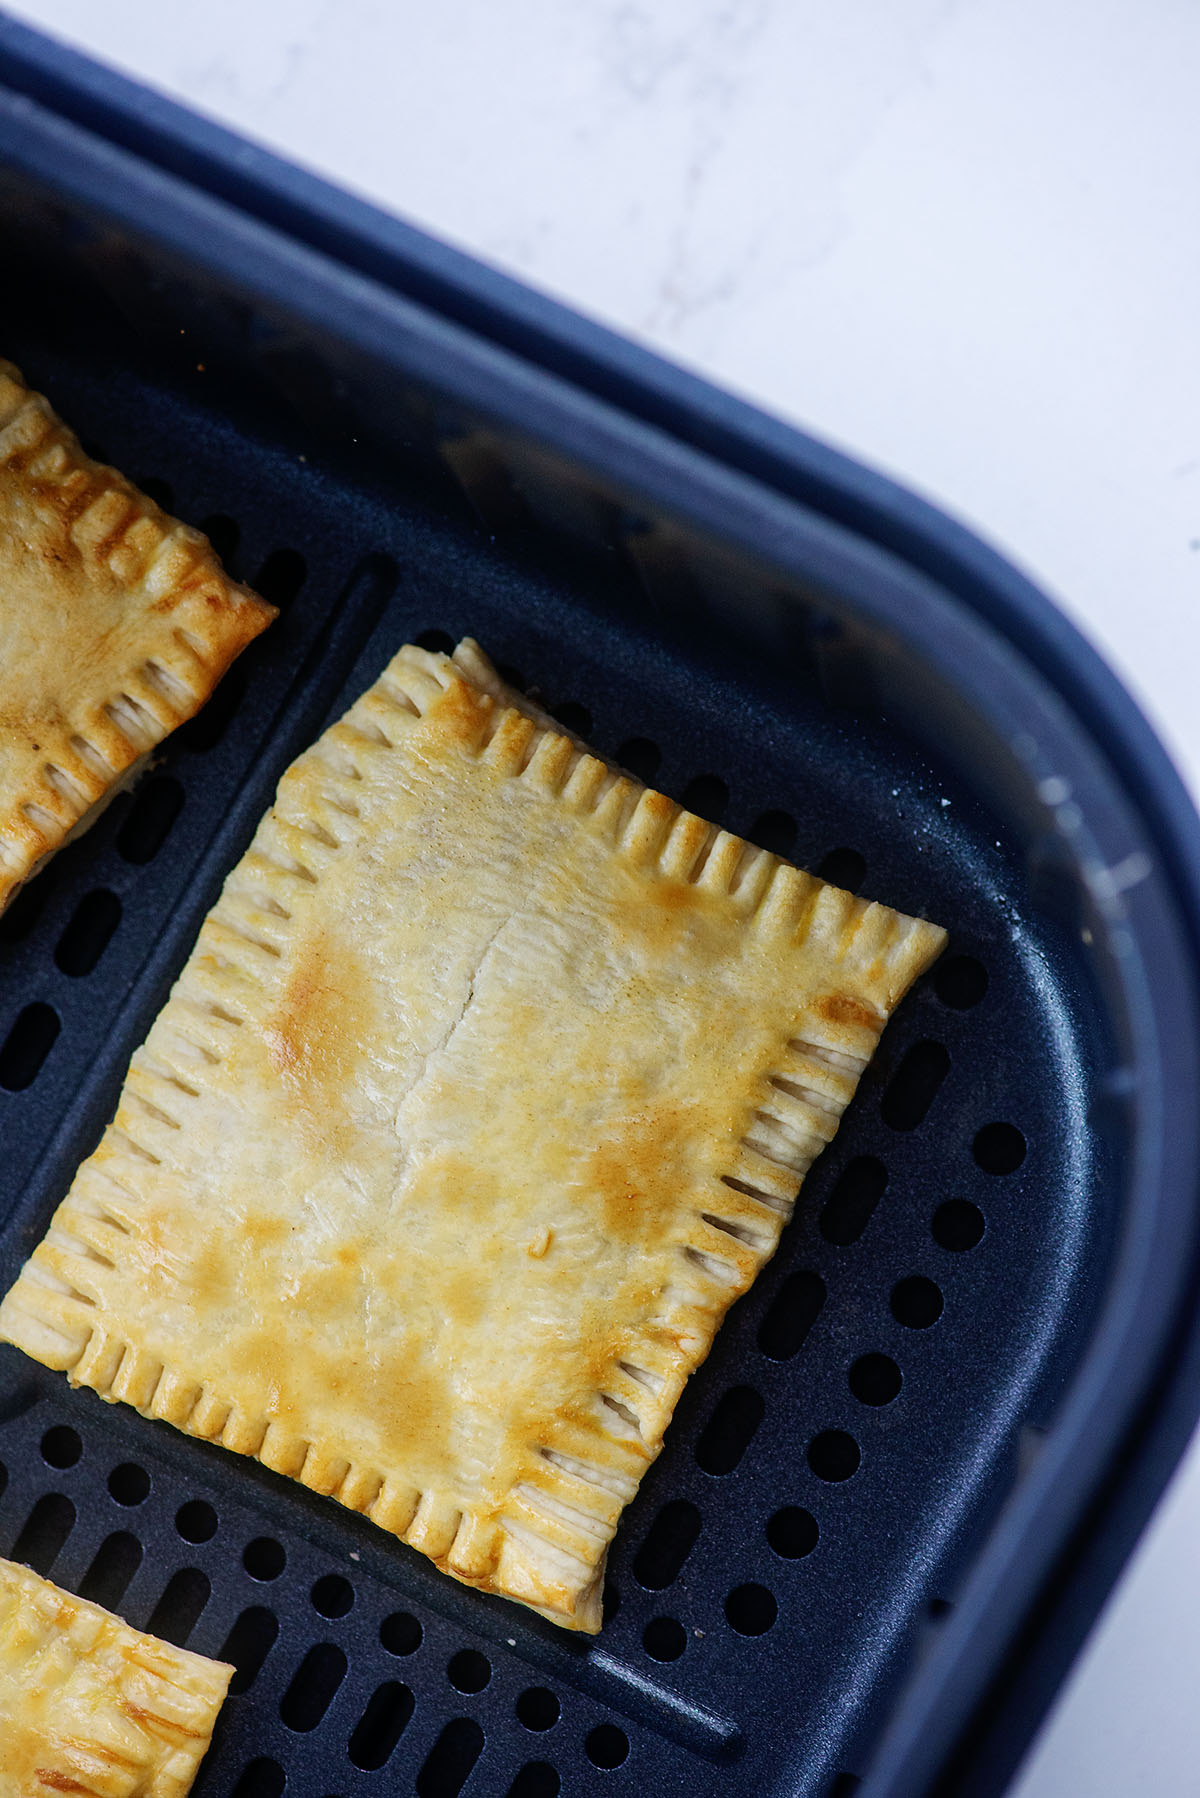 A close up of a cooked pop tart in an air fryer basket